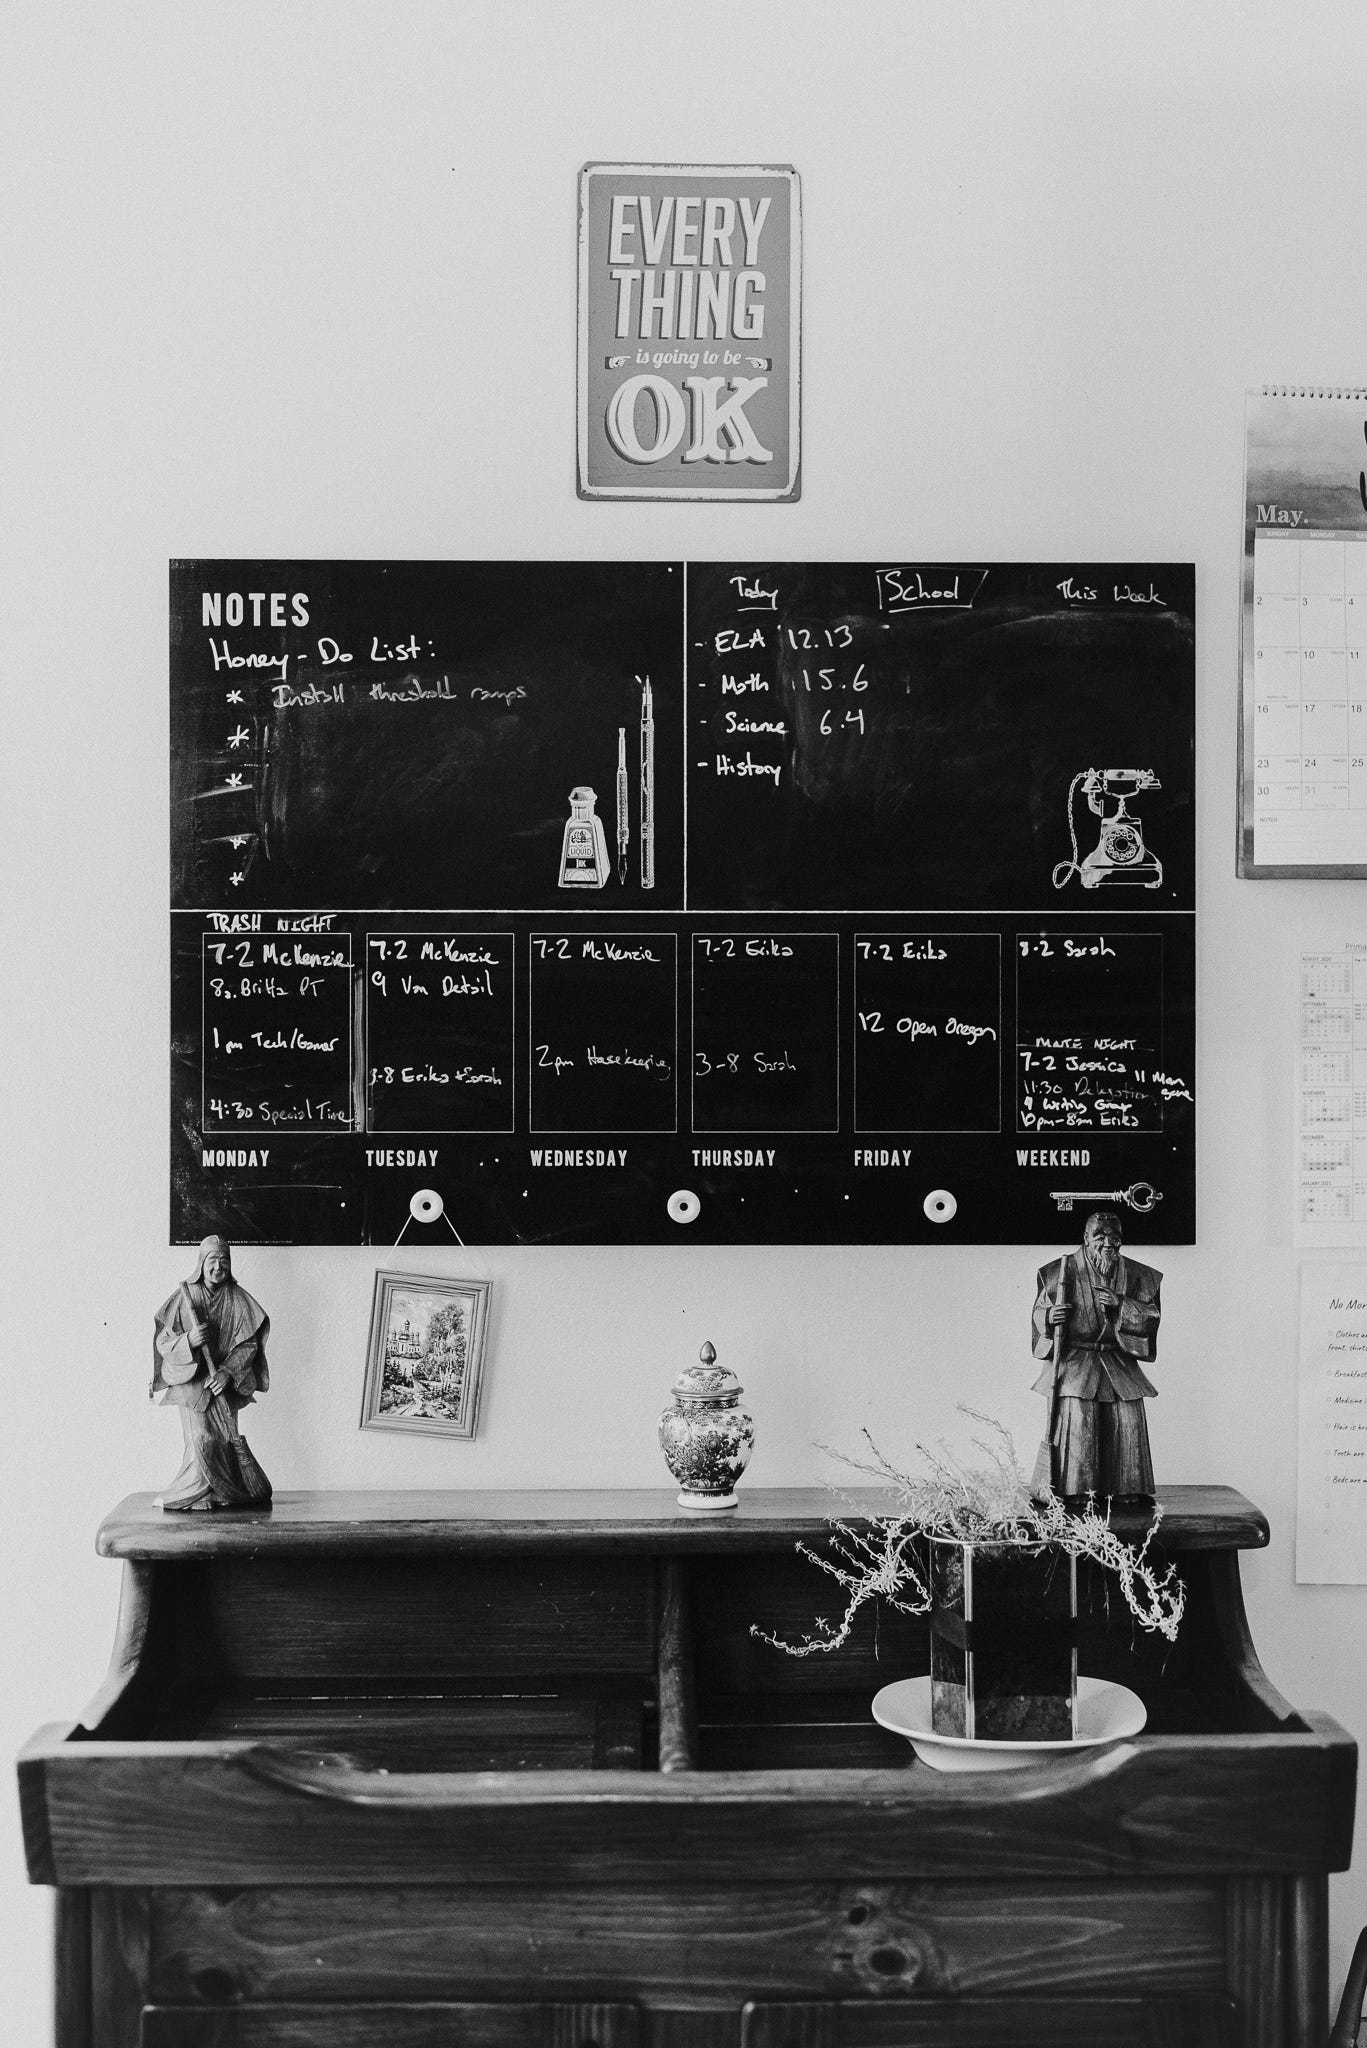 """A sign stating """"Everything is going to be OK"""" hangs above a messy chalkboard calendar with numerous details written in and a wooden dry sink with knickknacks on it."""